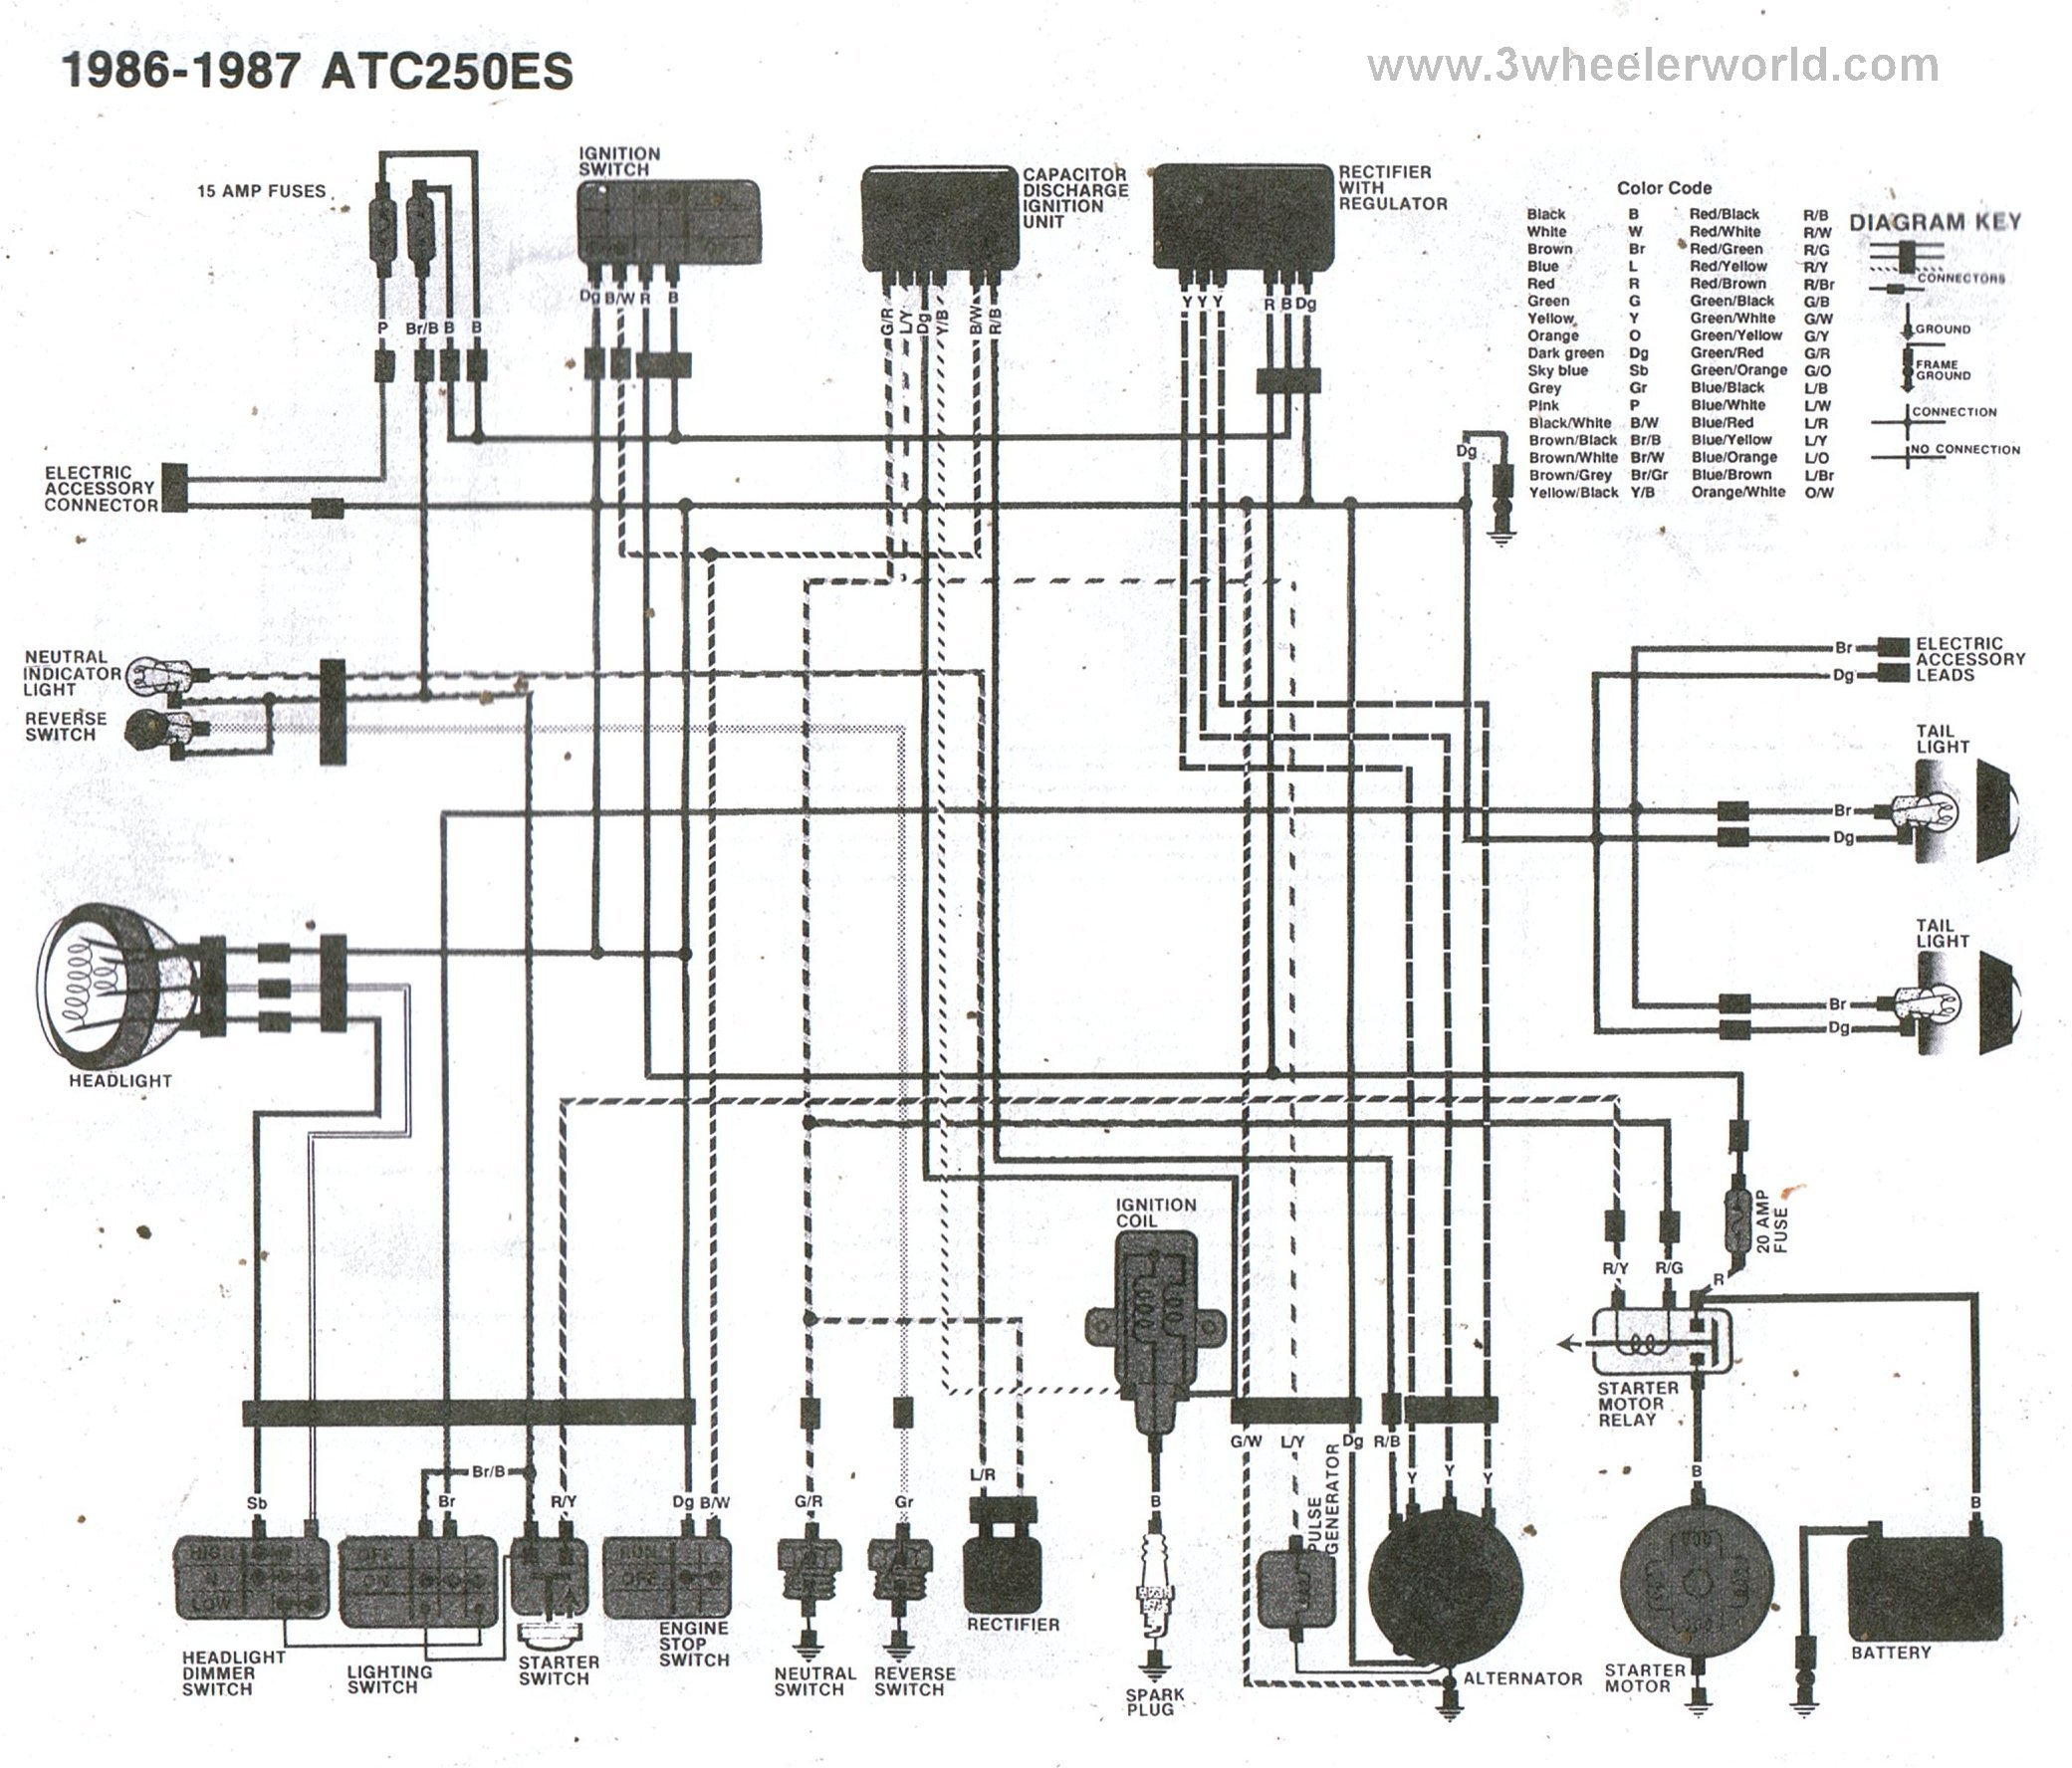 ATC250ESx86Thru87 honda big red 300 wiring diagram mule wiring diagram \u2022 wiring 1999 trx300 wiring diagram at fashall.co